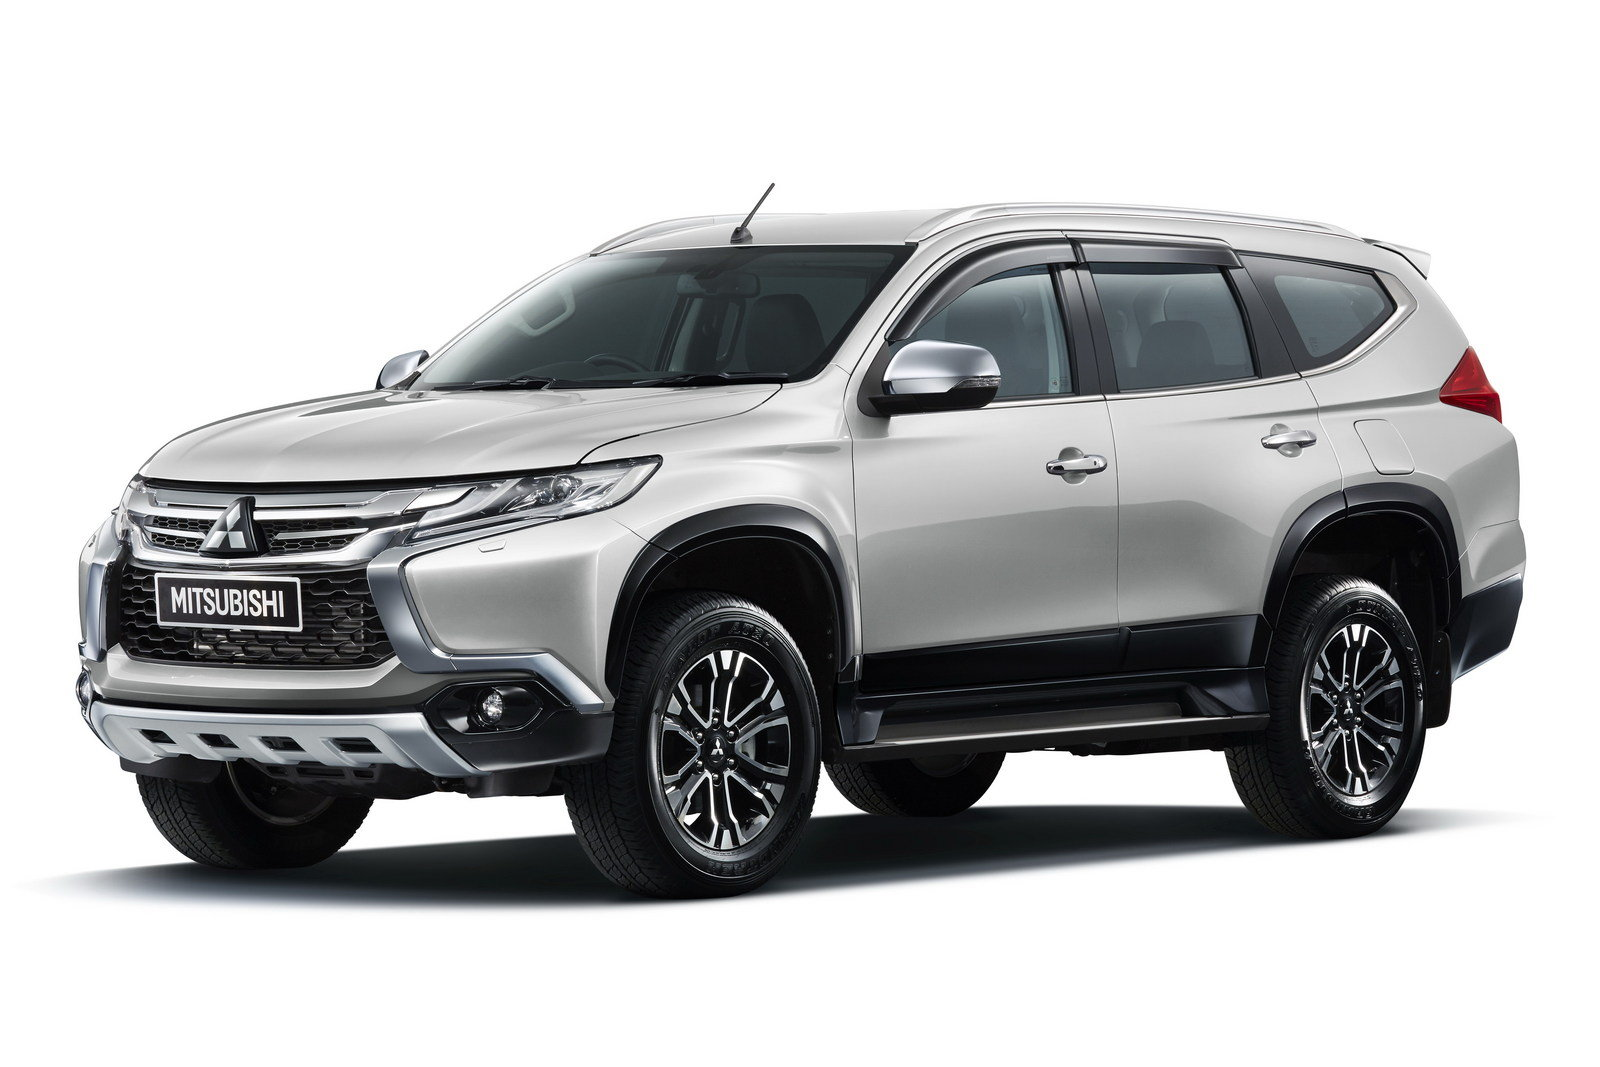 2016 Mitsubishi Pajero Sport  Picture 638840  truck review @ Top